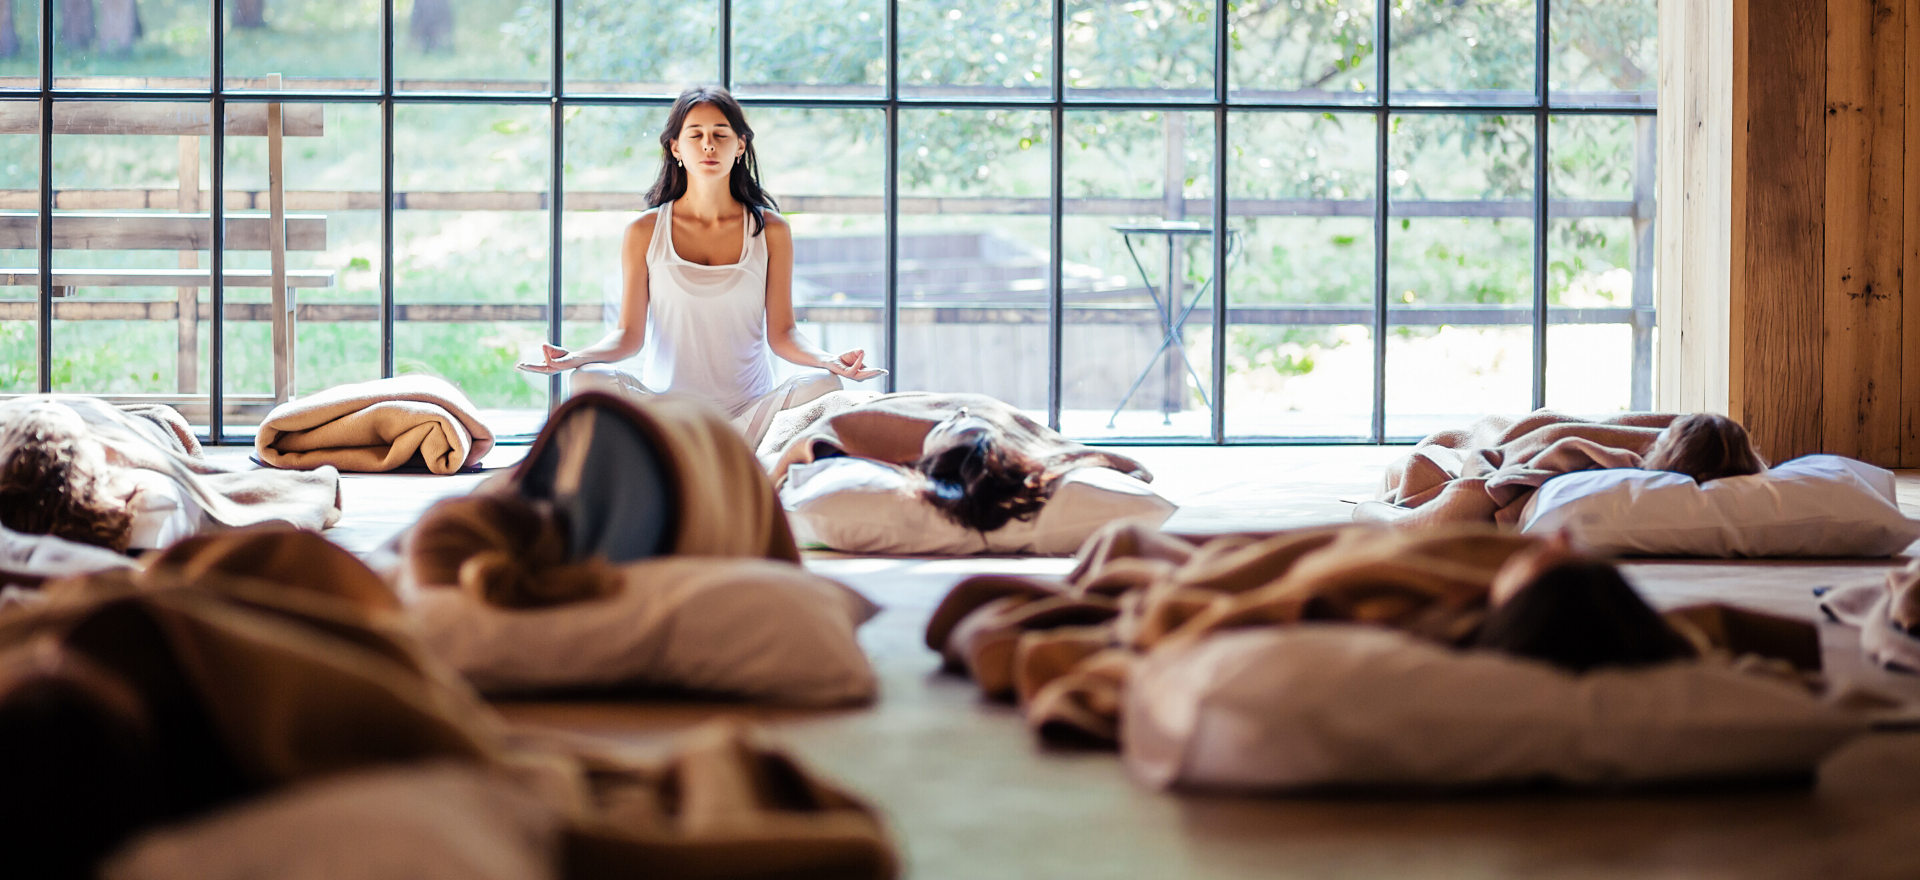 Yoga instructor meditates during her yoga class while students rest in savasana.